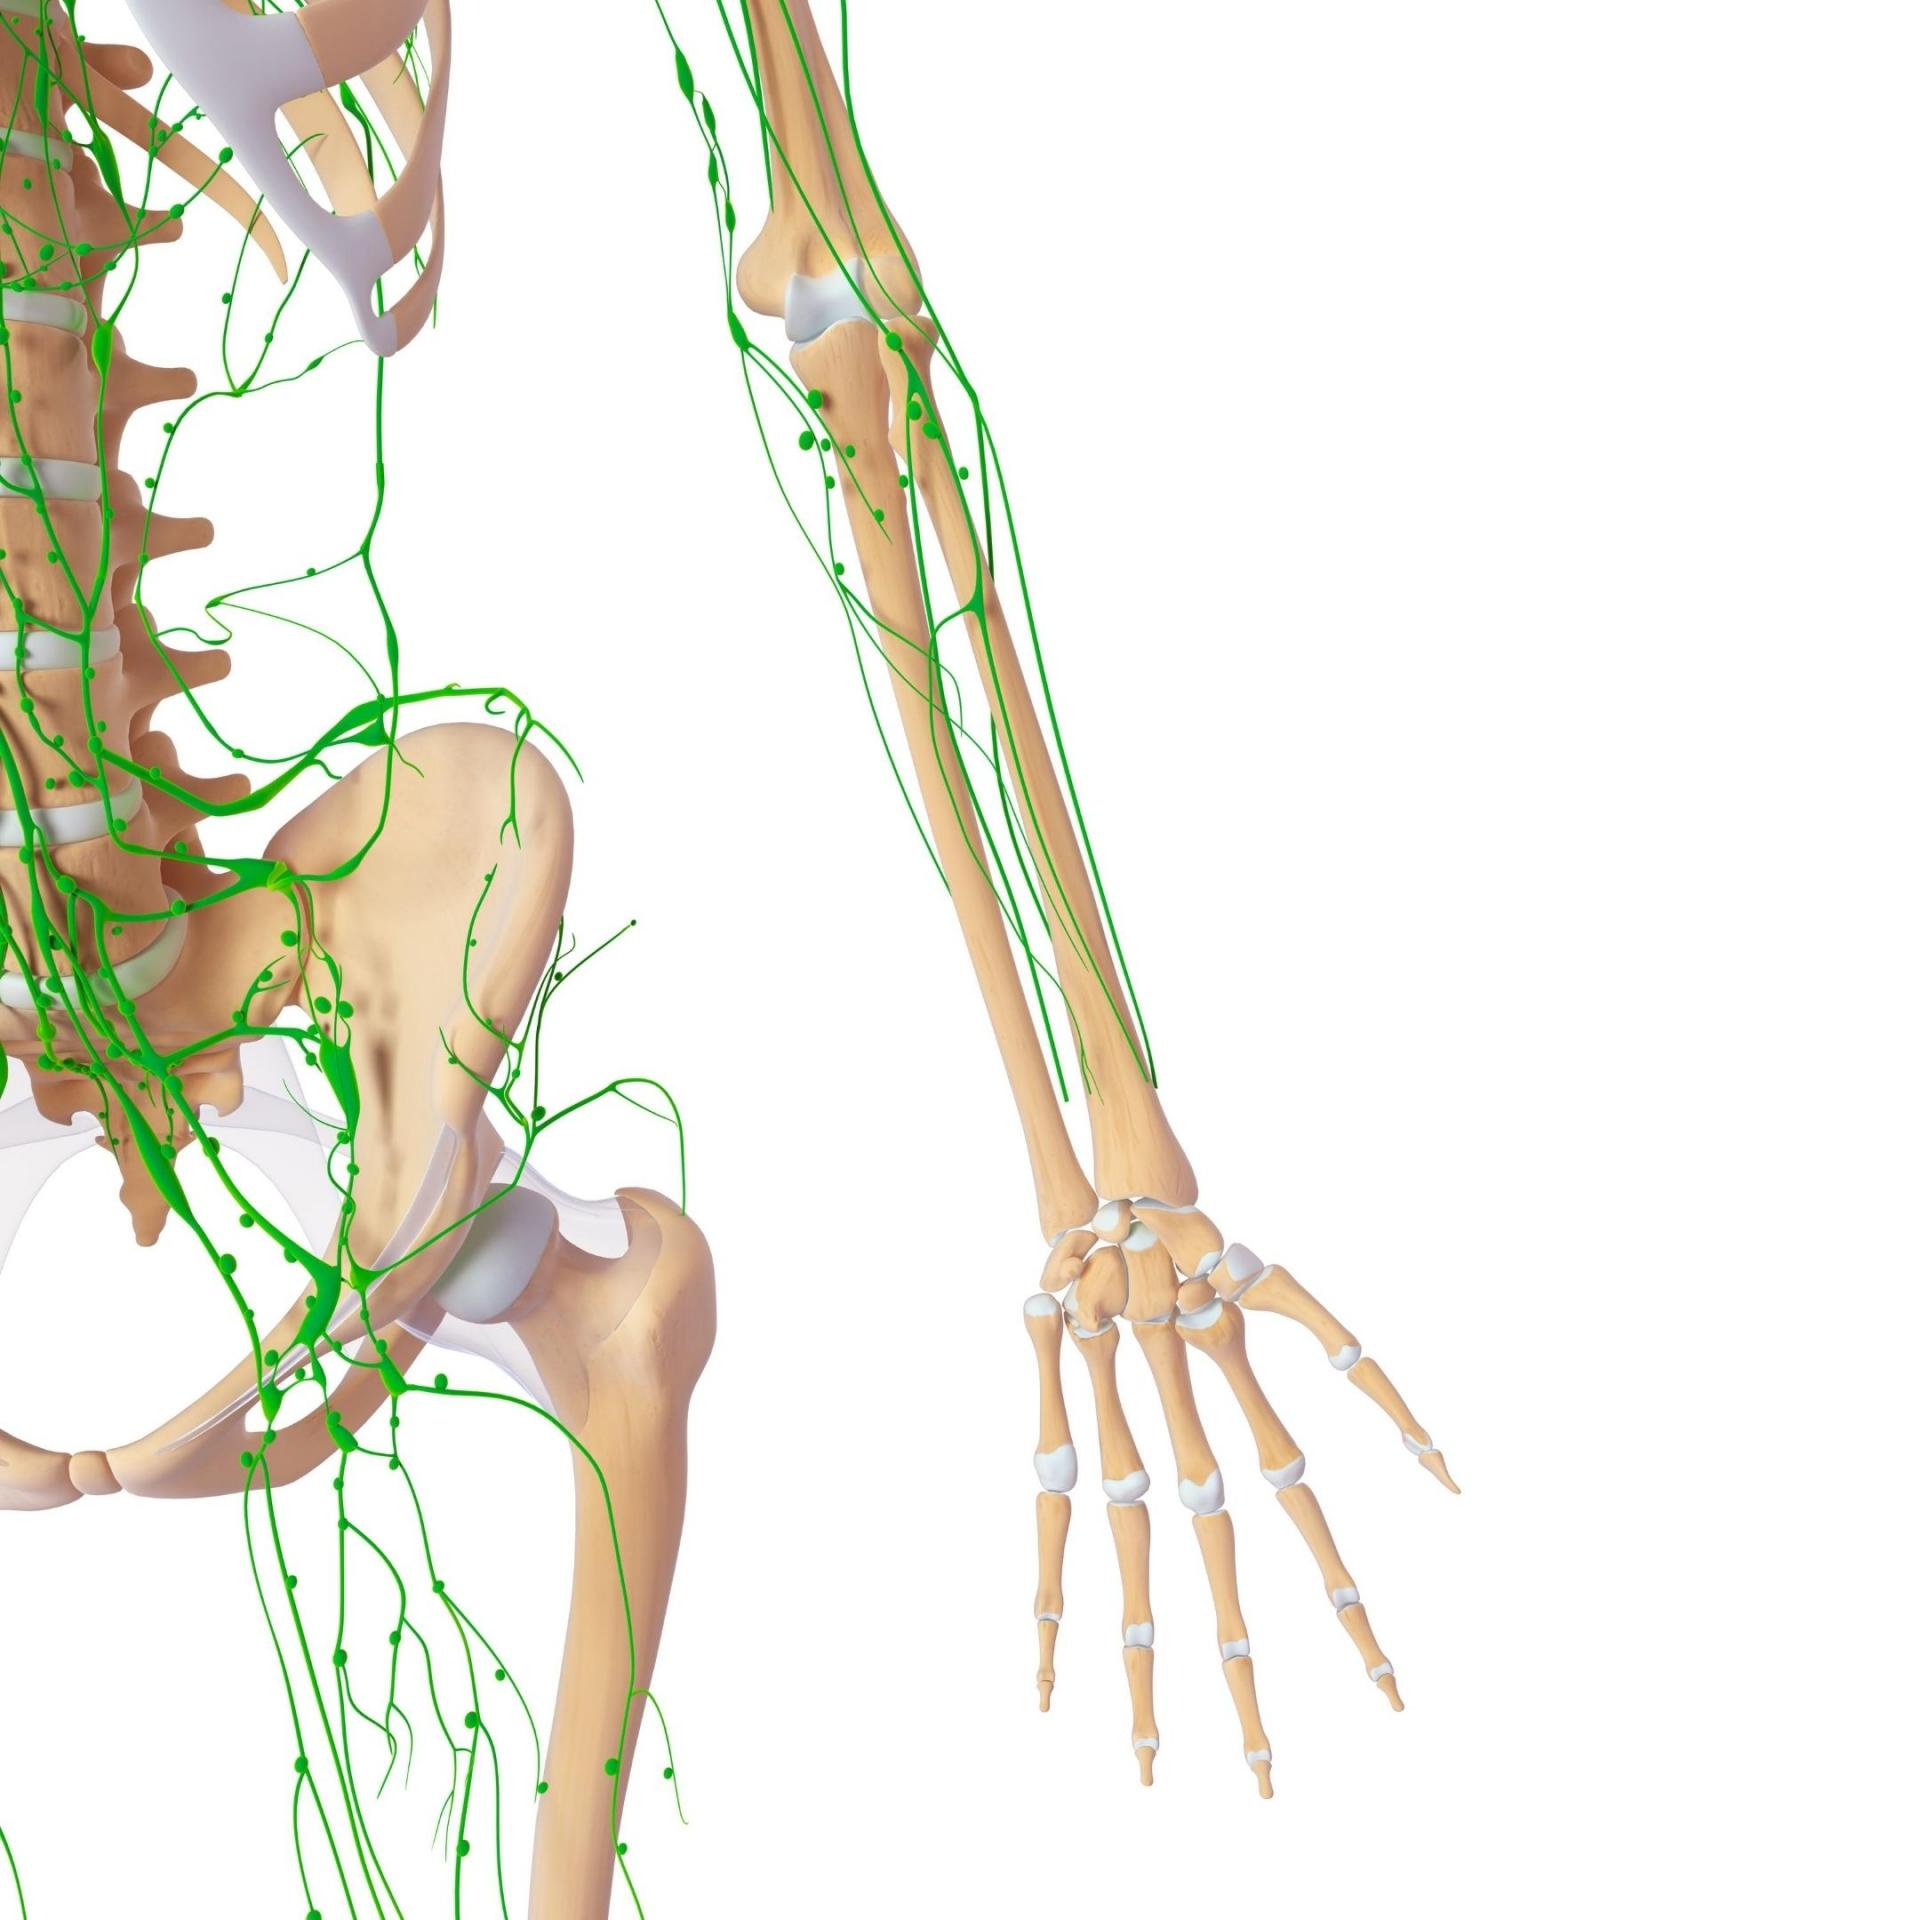 Lymphatic system pic for website